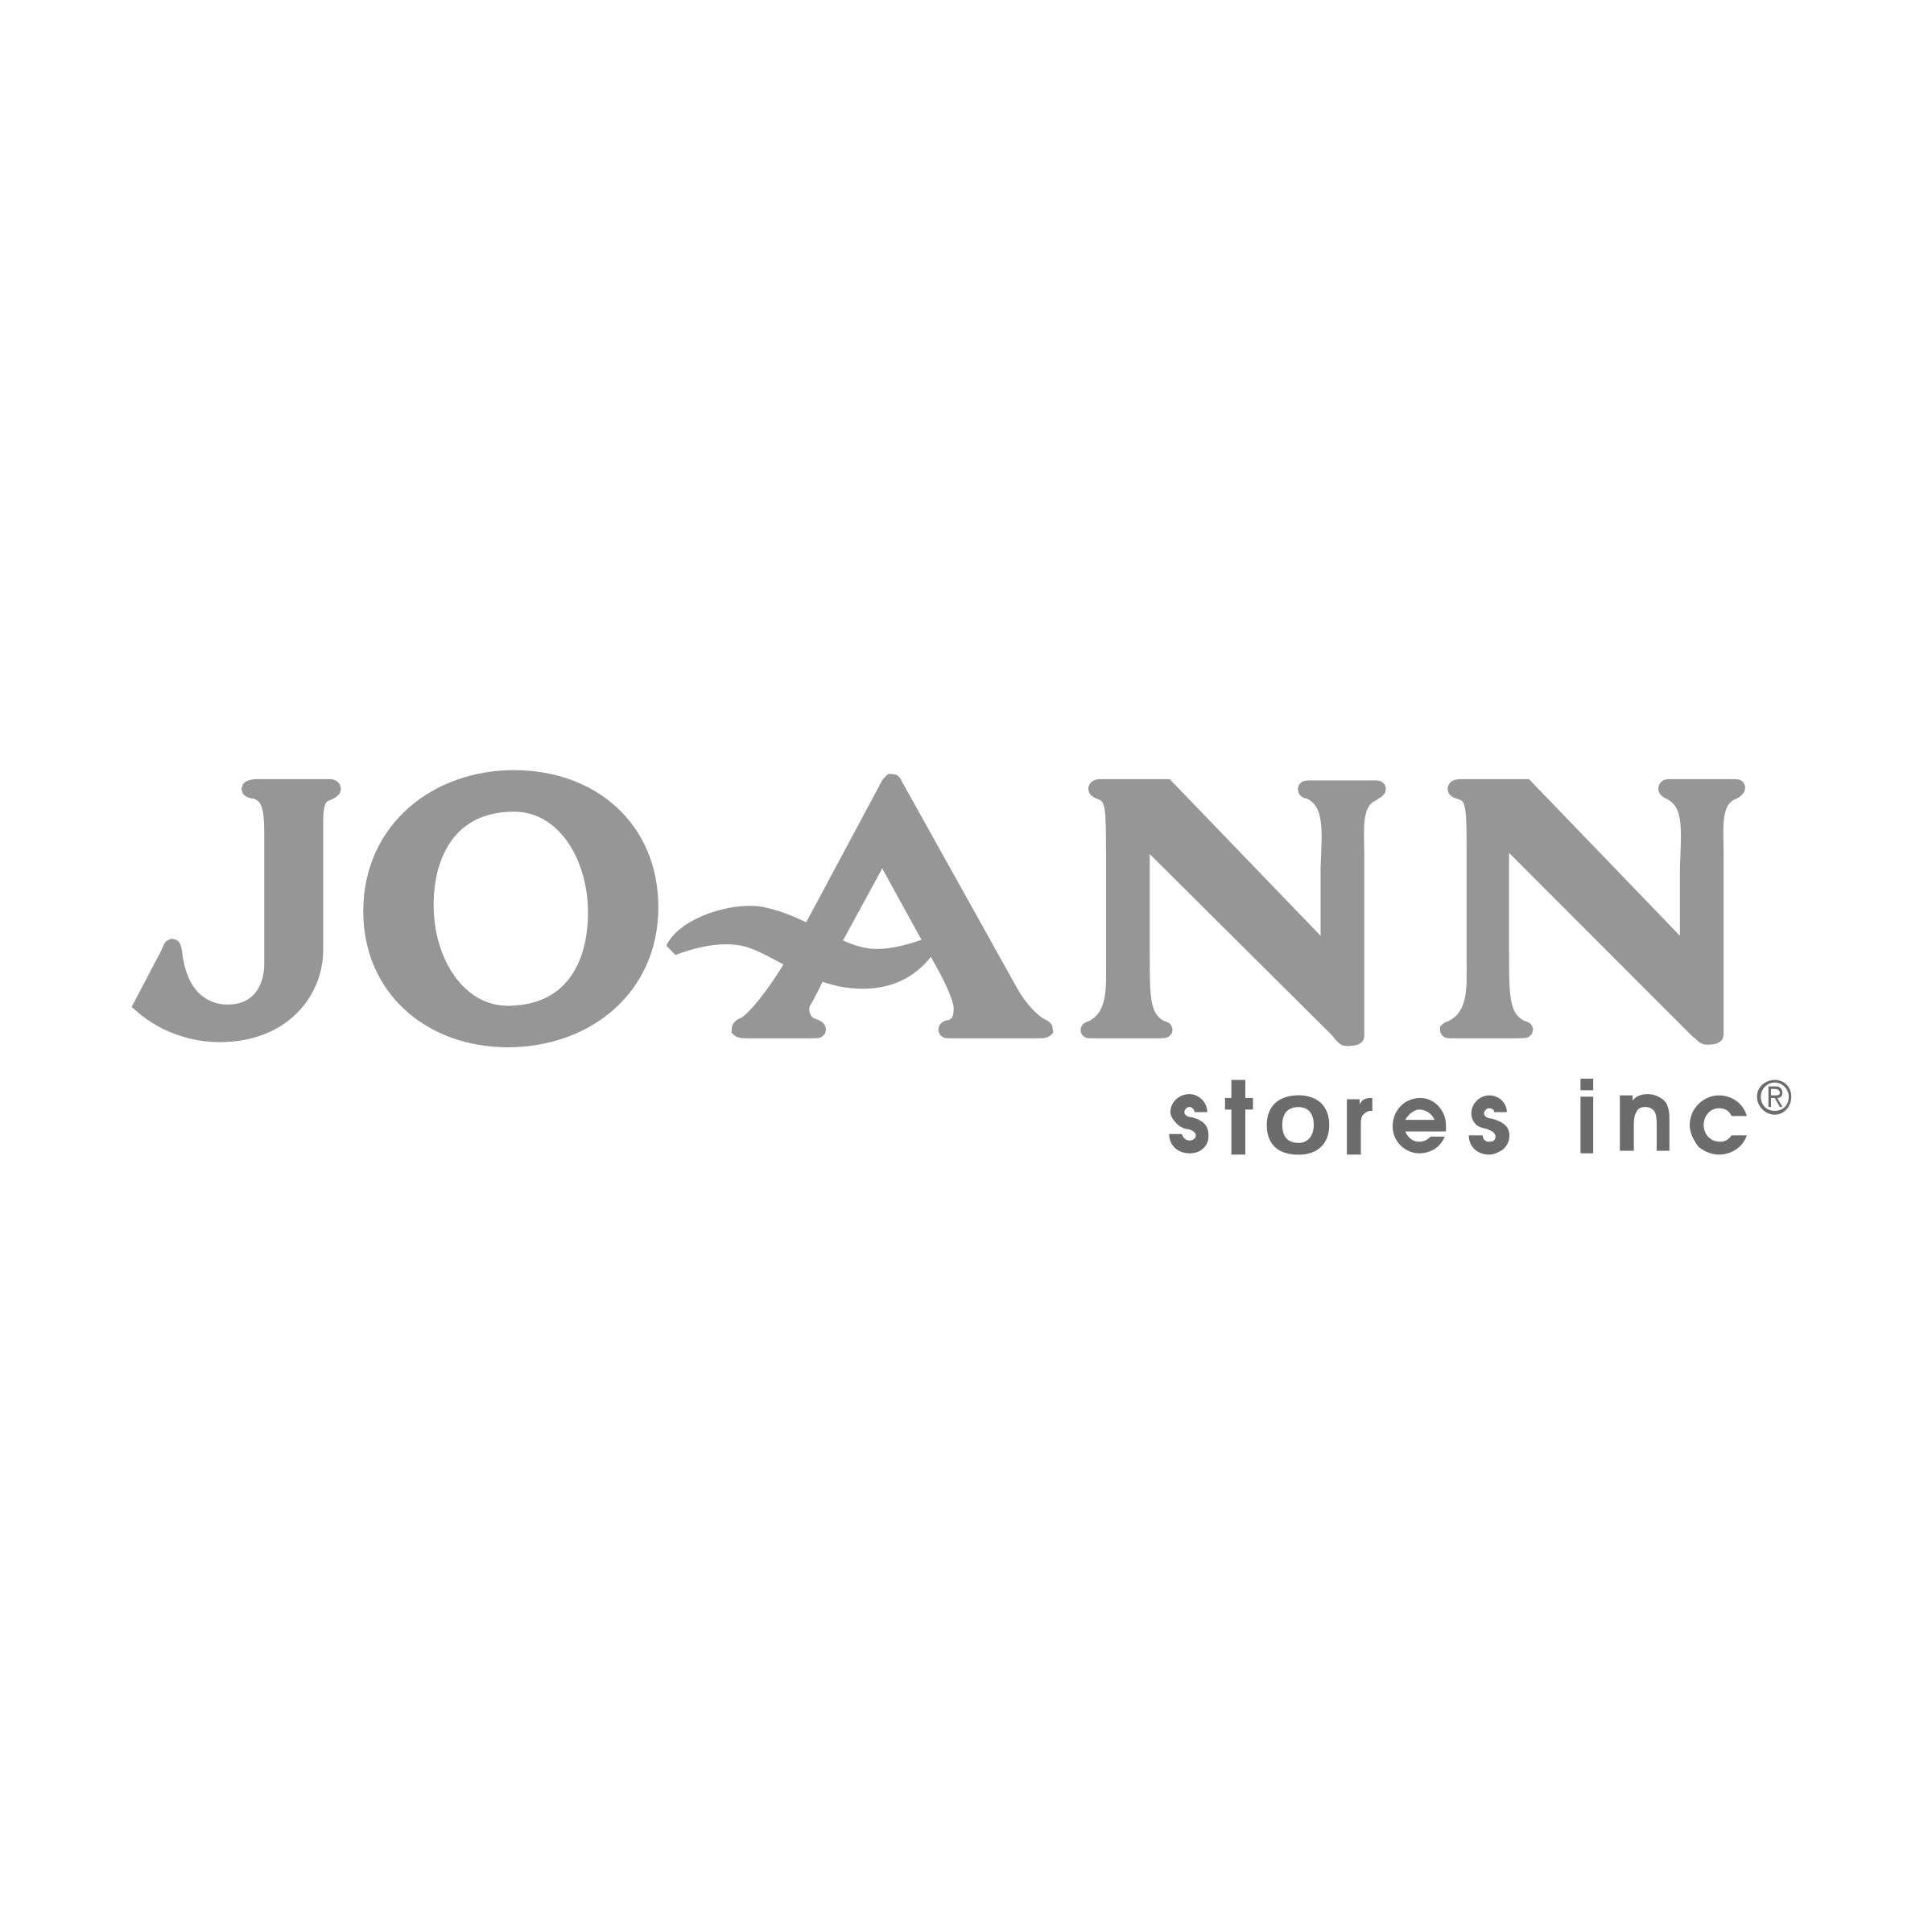 jo-ann-stores-logo-png-transparent.png